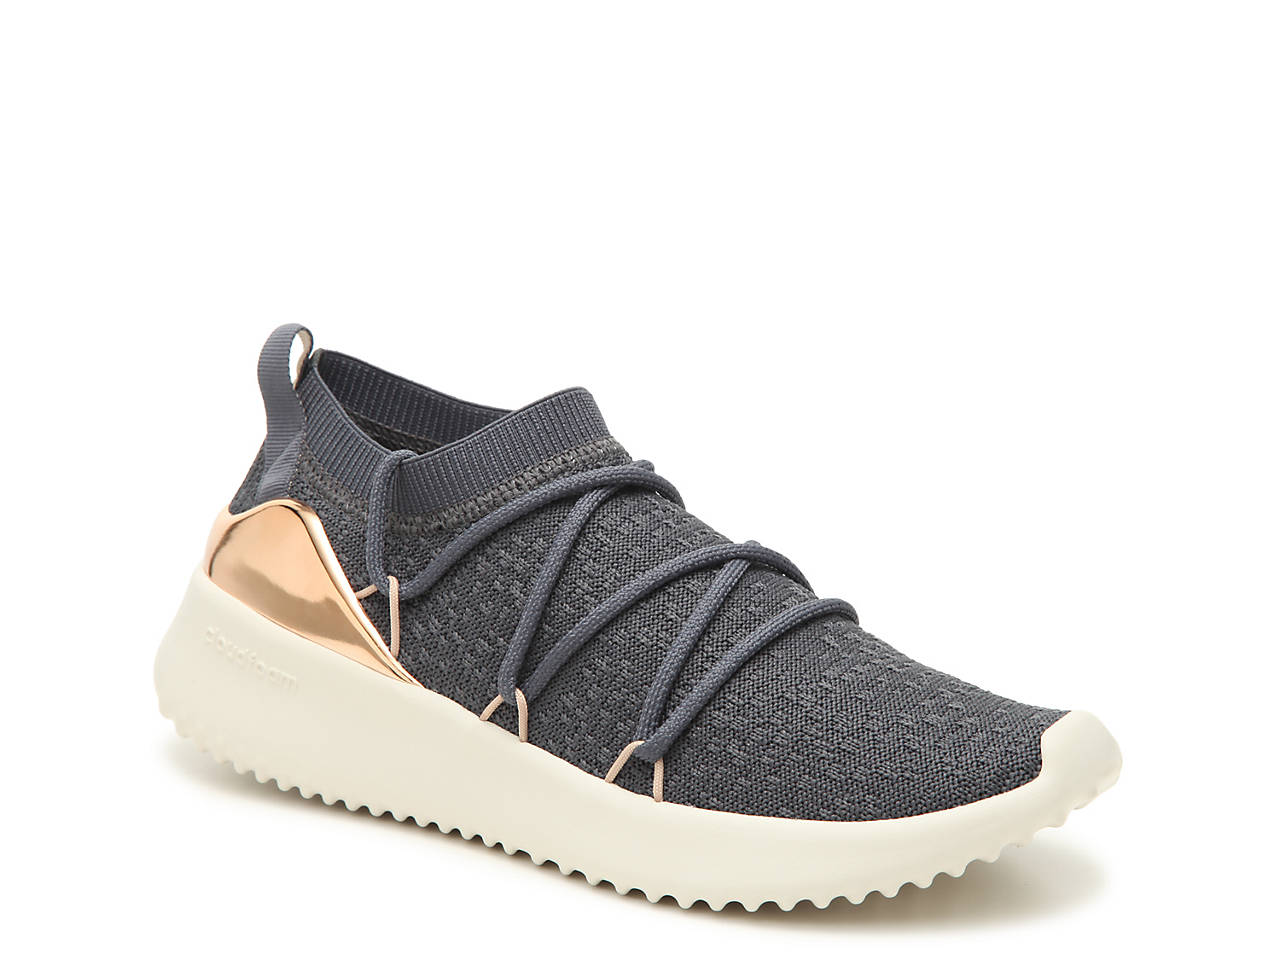 5e9d7ff749a14d adidas Ultimamotion Sneaker - Women s Women s Shoes